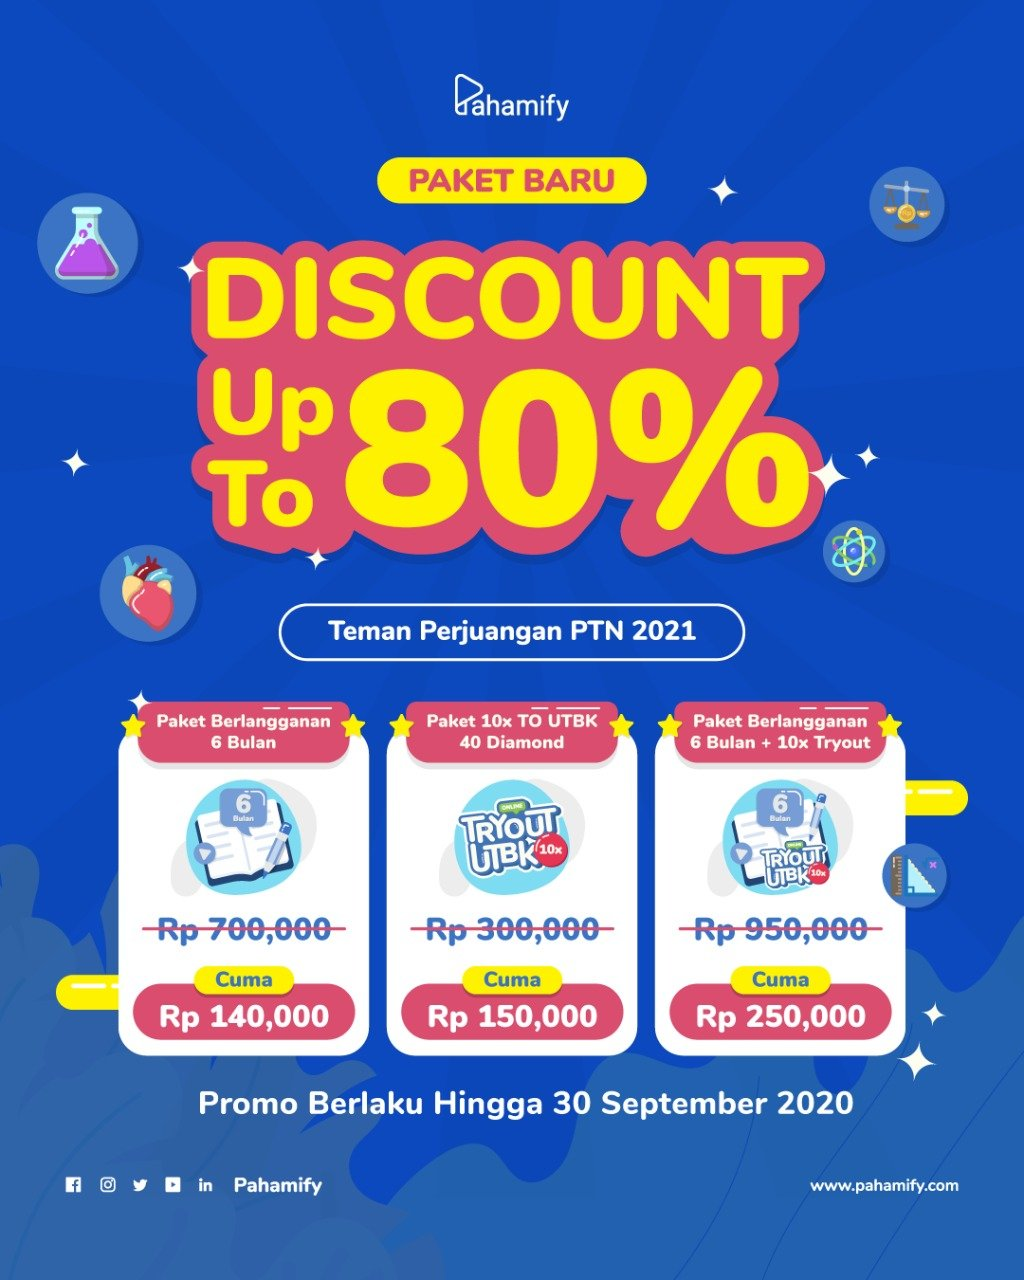 DISCOUNT UP TO 80%!